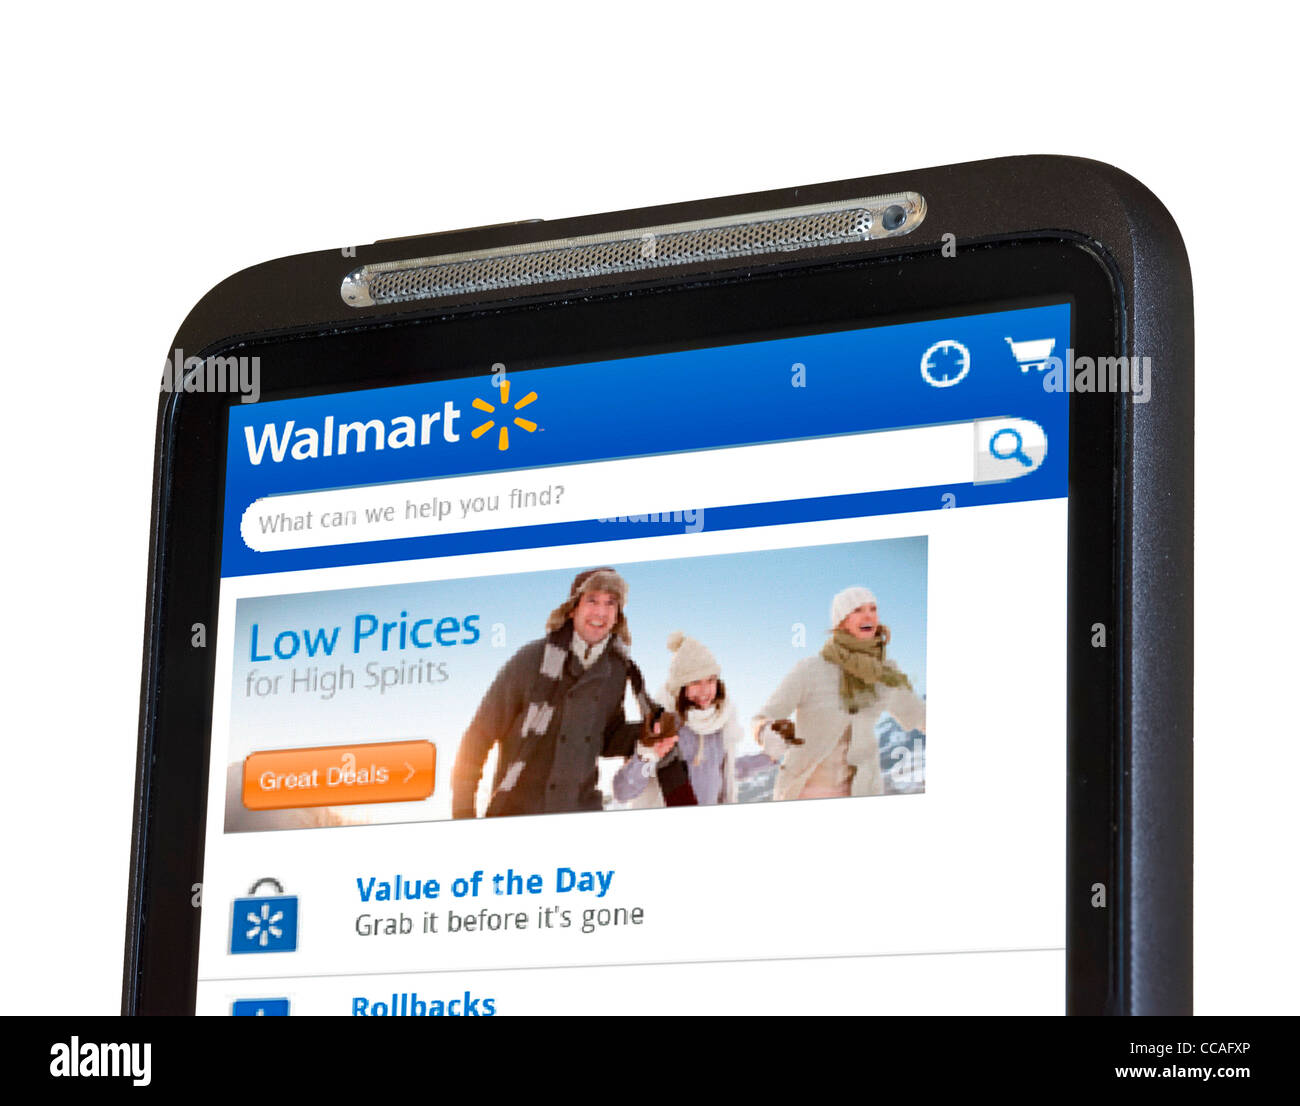 Walmart Stock Phone Number >> Shopping Online At Walmart With An Htc Smartphone Stock